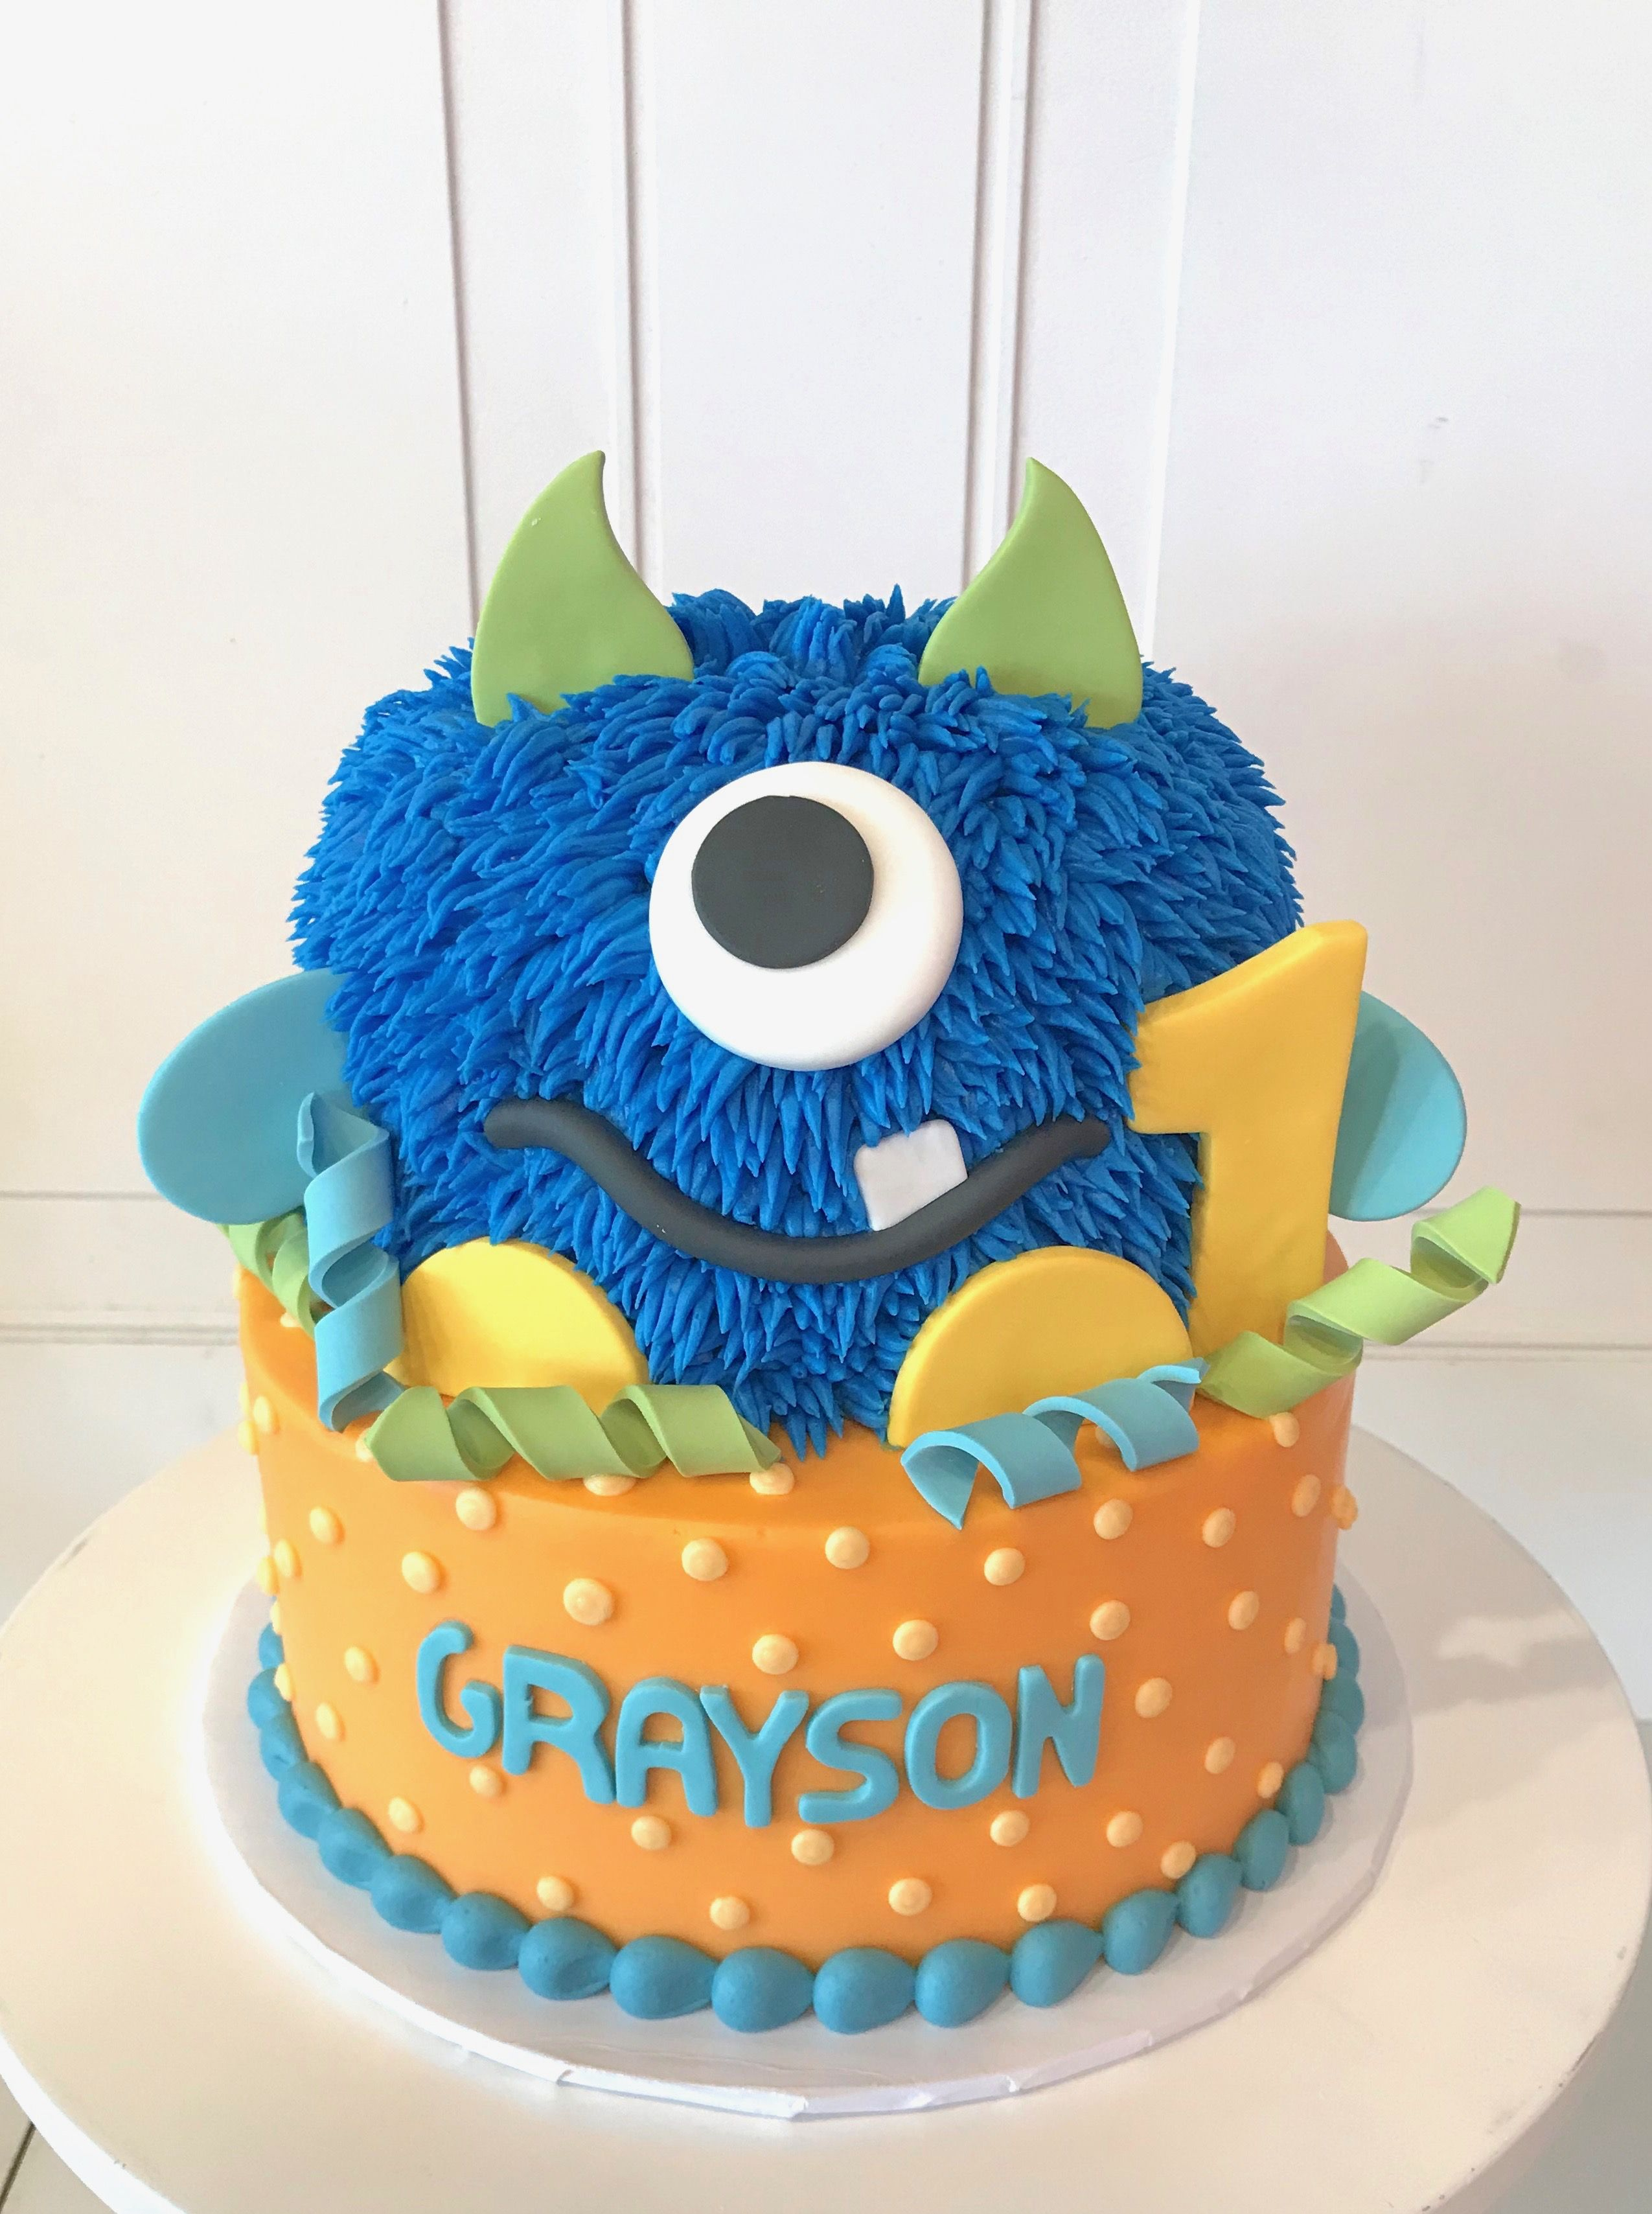 Magnificent Childrens Birthday Cakes That Are Unique And Delicious With Funny Birthday Cards Online Inifofree Goldxyz